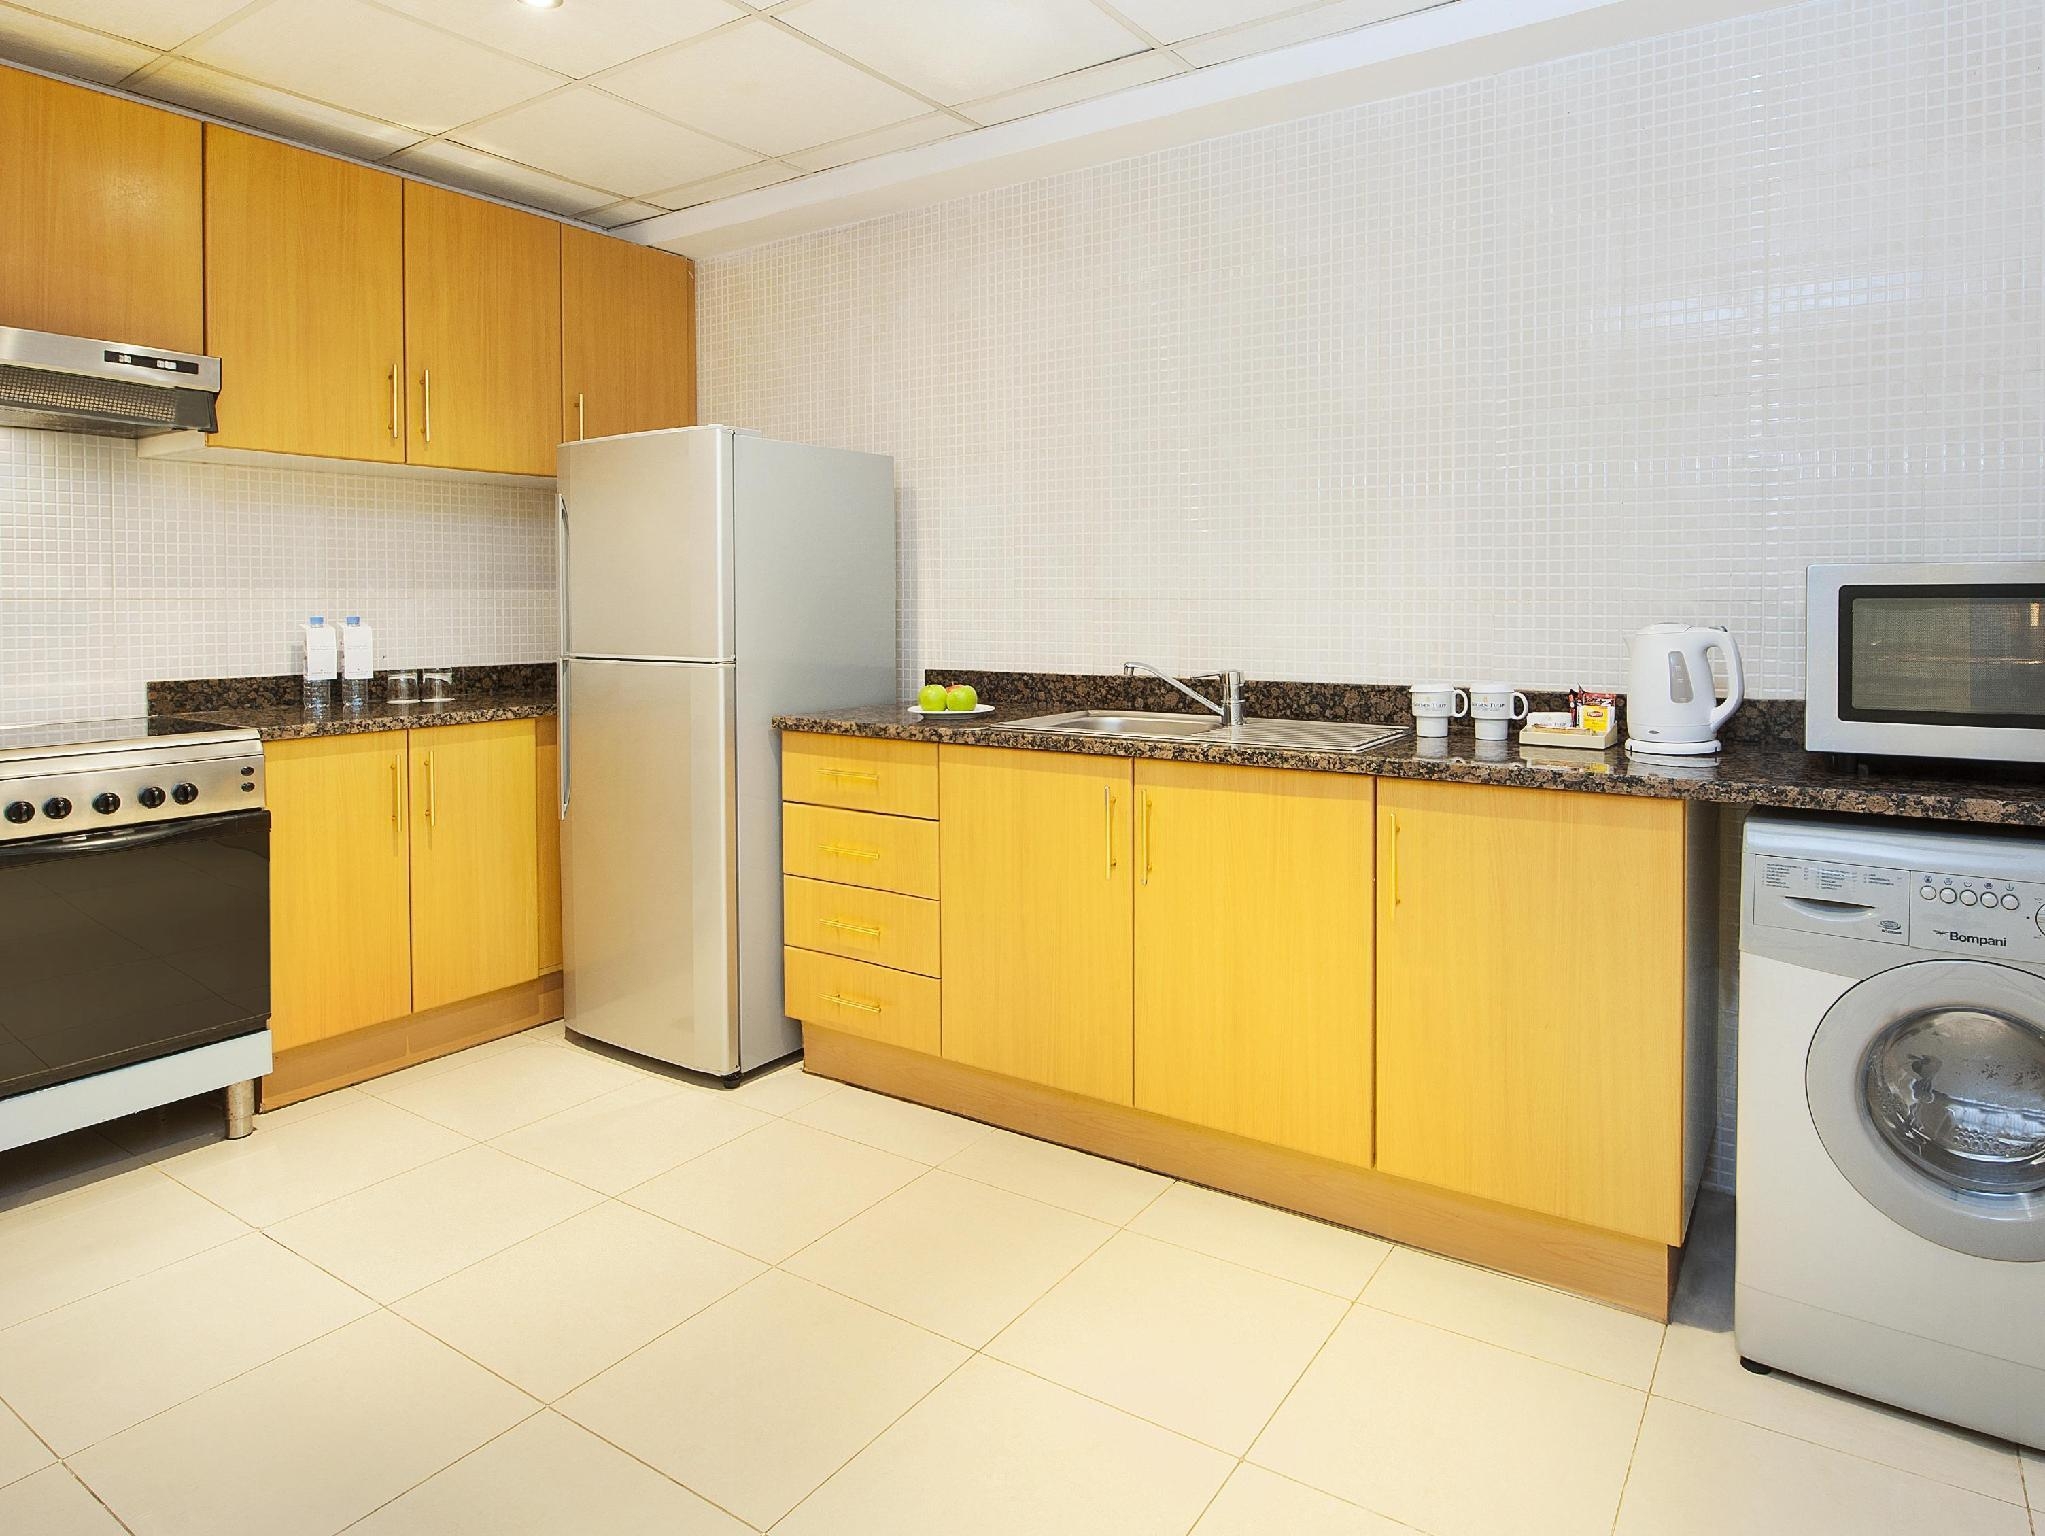 Apartament executive z 2 sypialniami (2 Bedroom Executive Apartment)